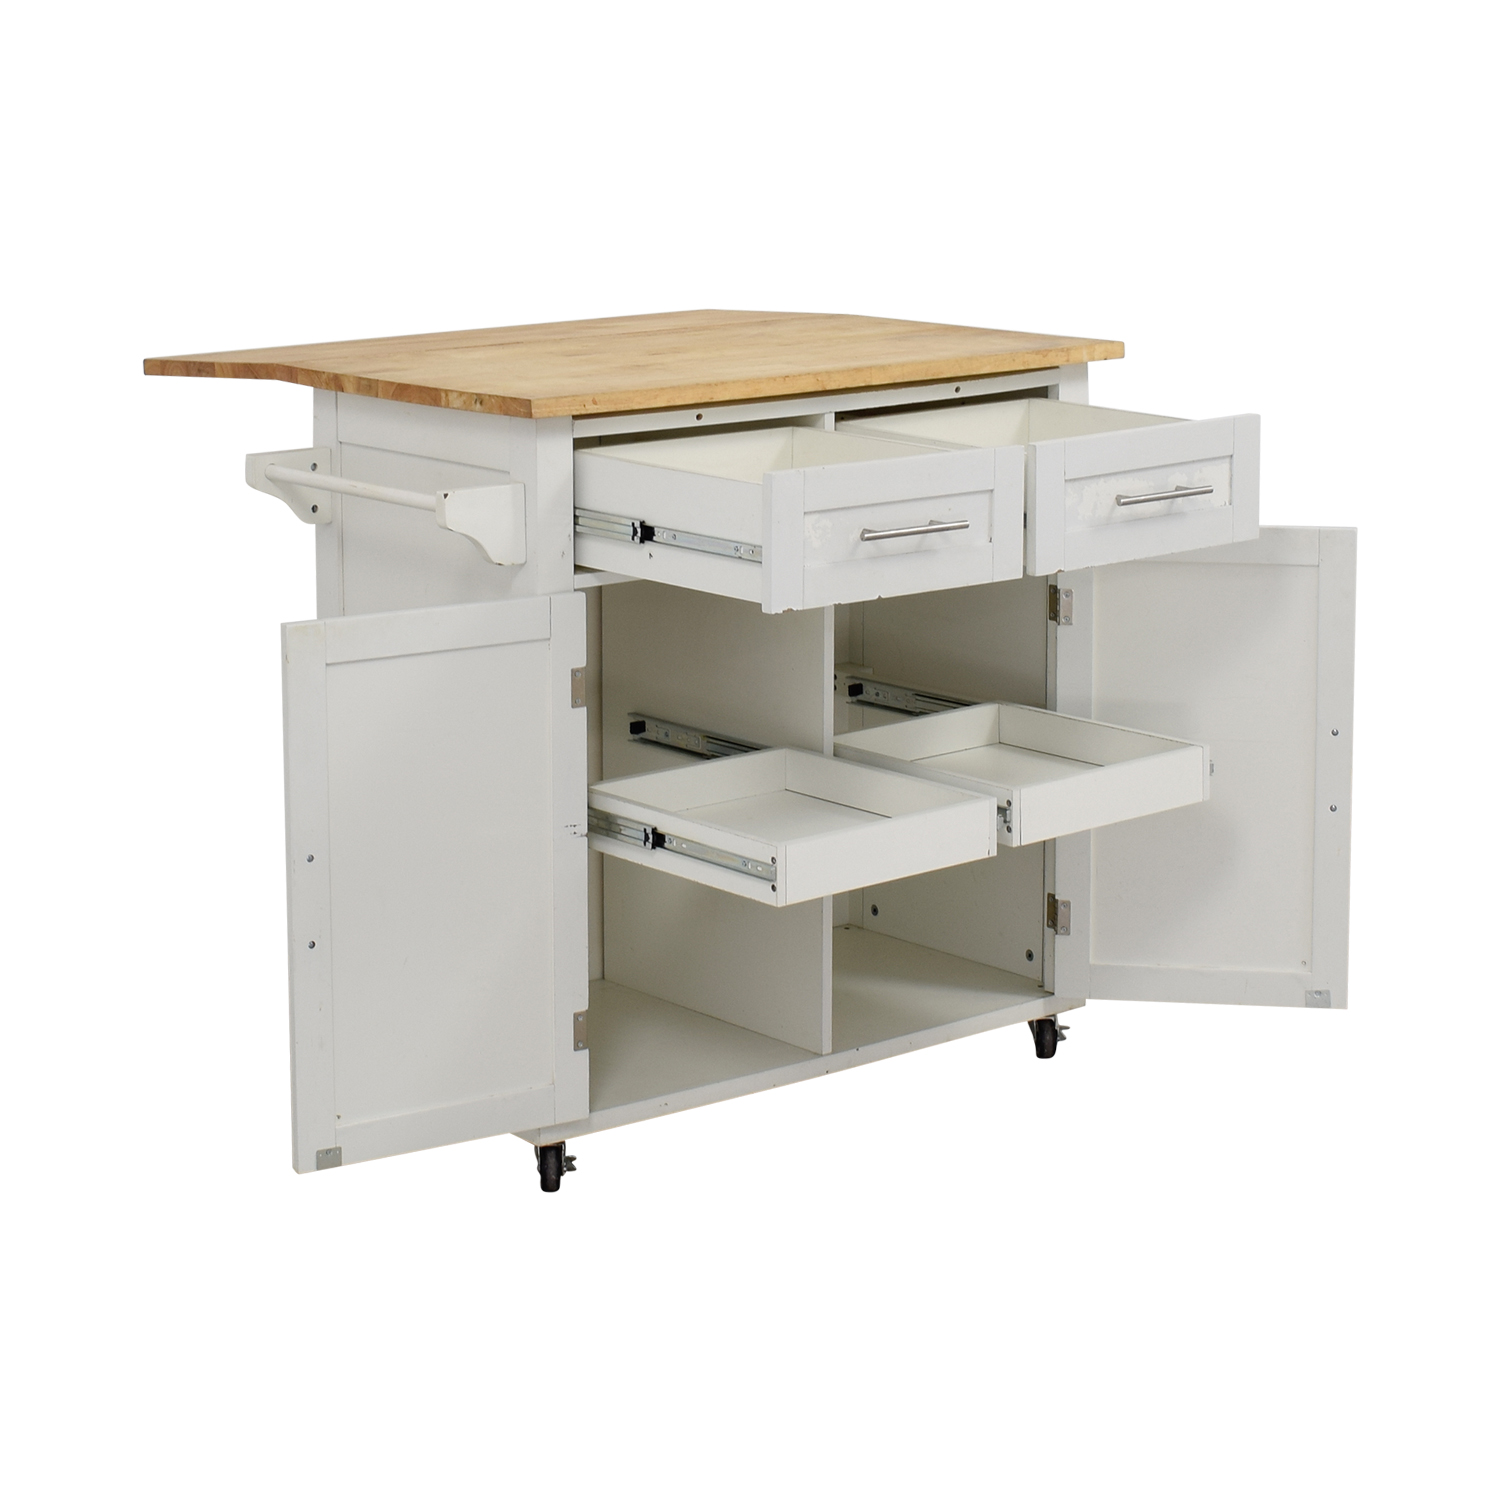 Target Kitchen Island Cart 39% Off - Target Target White Kitchen Island / Tables